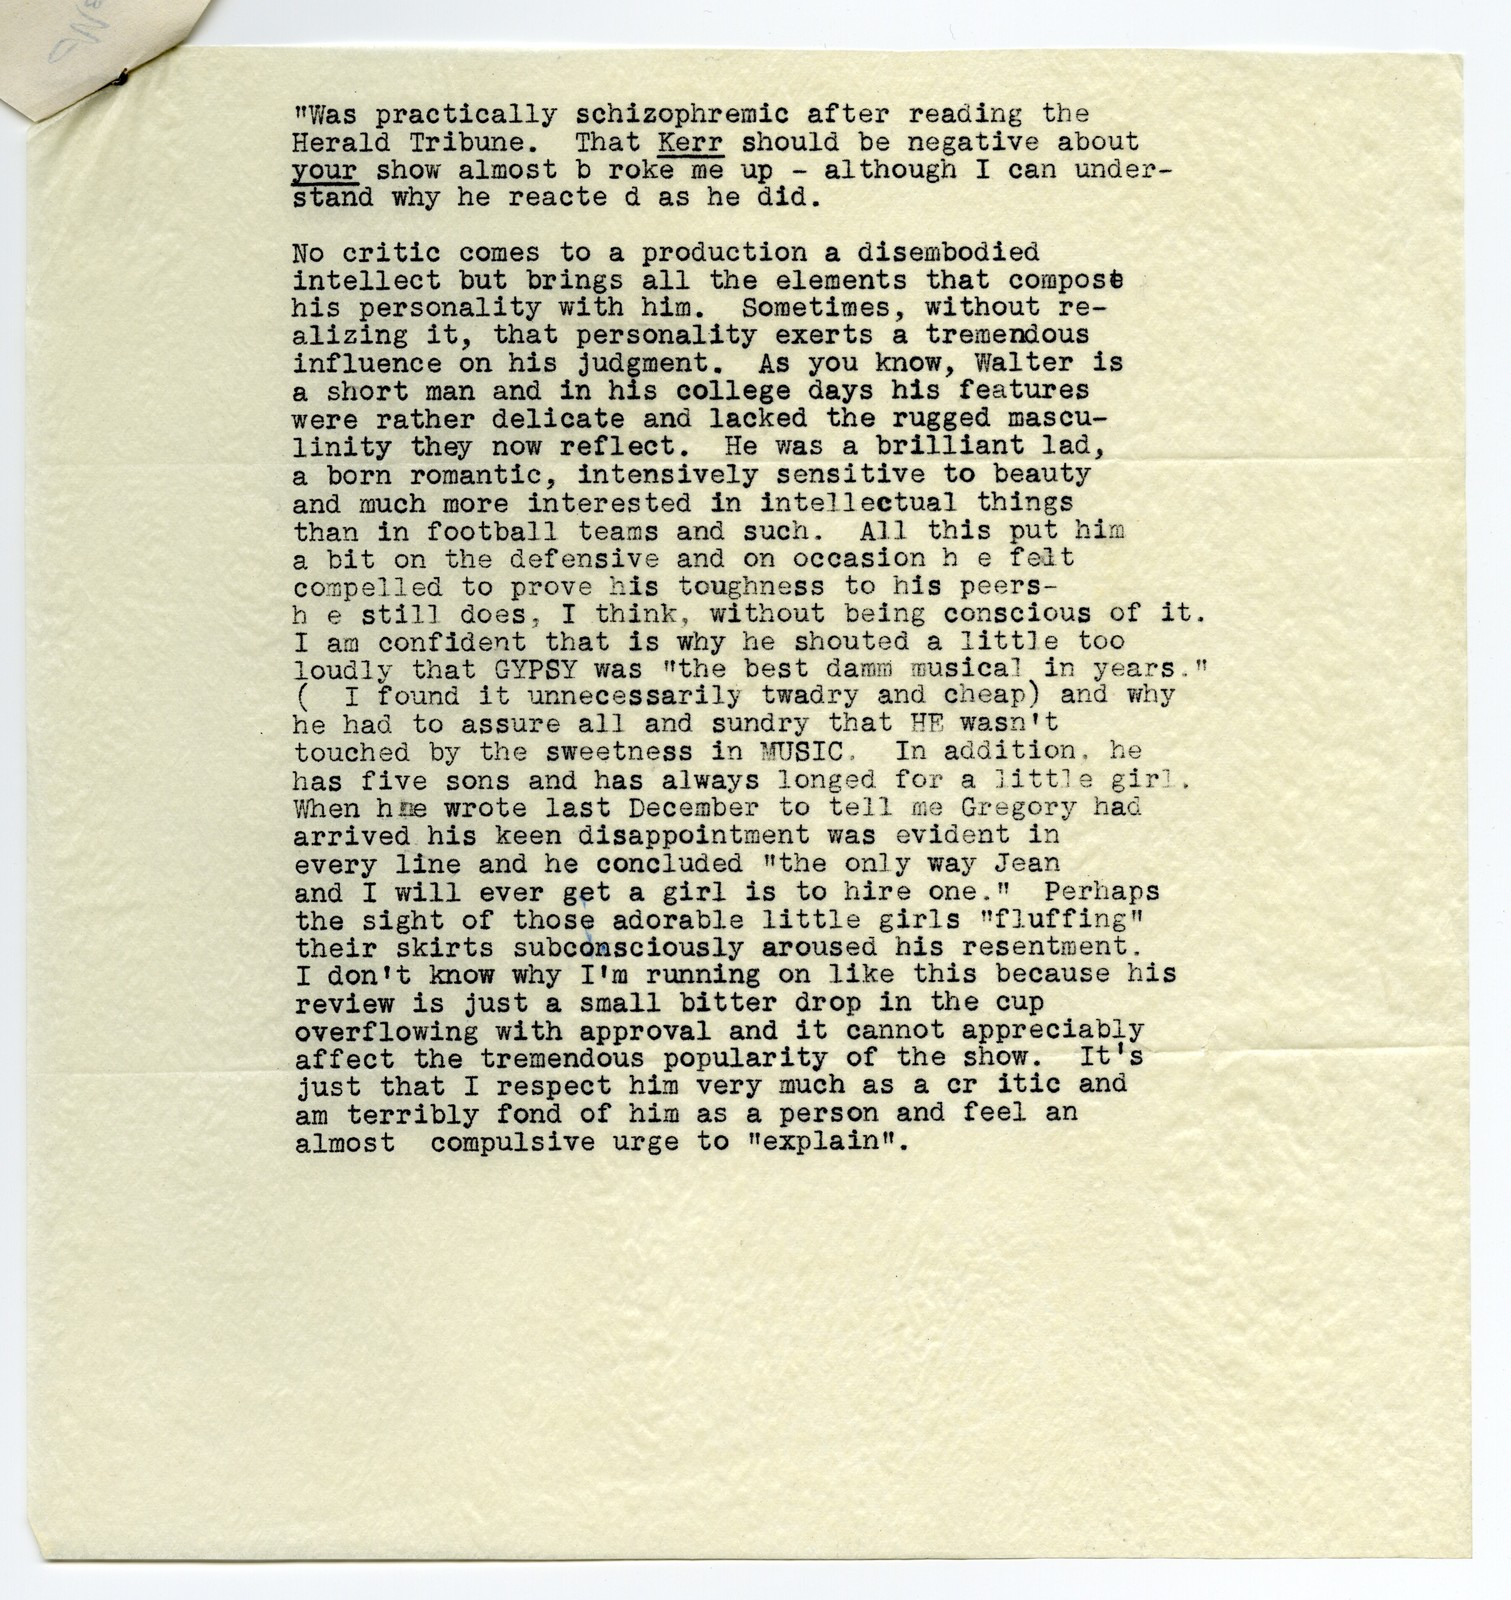 [ Excerpt of letter from Sr. Gregory to Mary Martin and Richard Halliday, undated, forwarded to Oscar Hammerstein II, November 25, 1959]